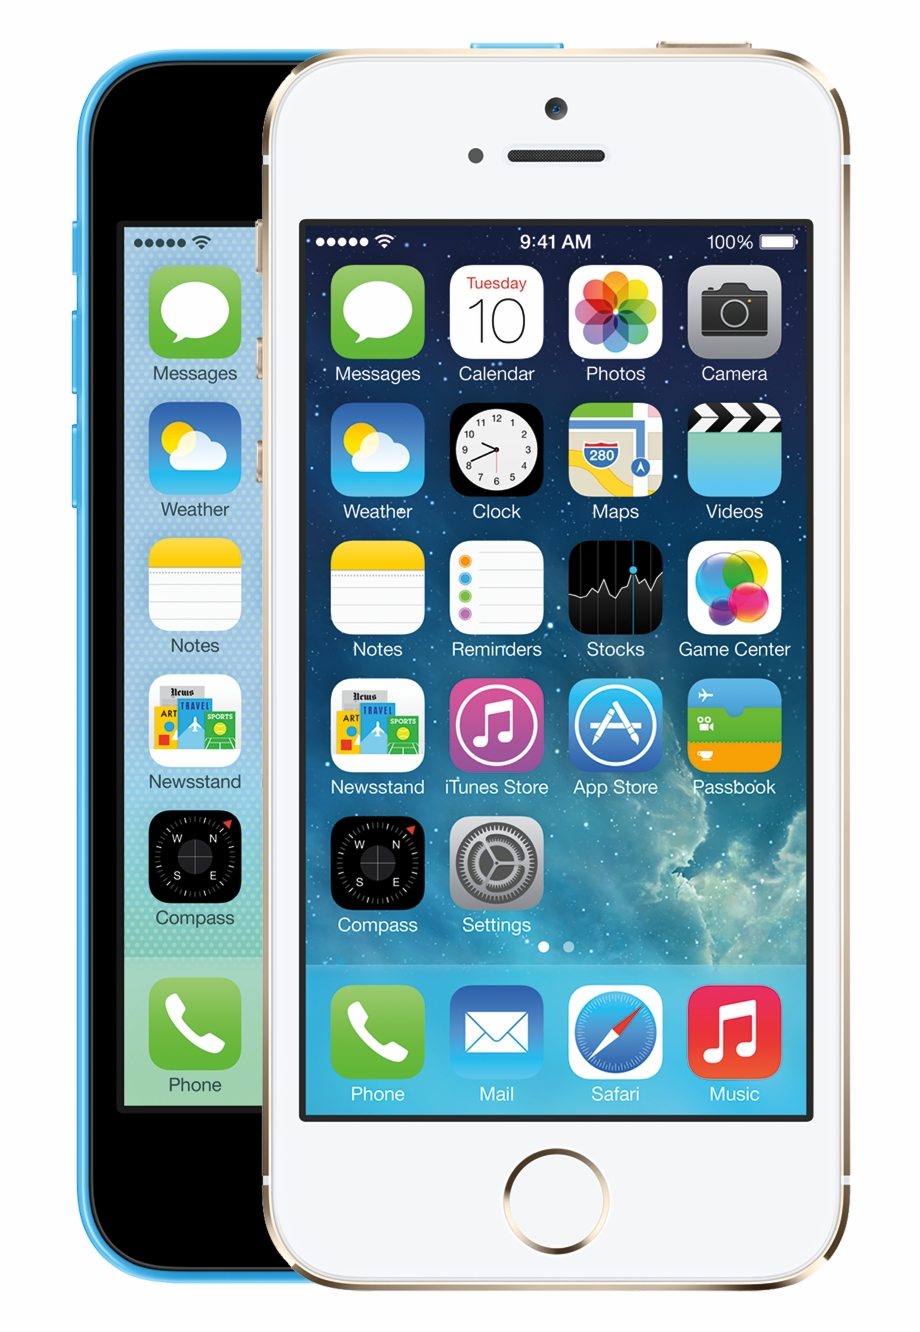 Apple Iphone Png Transparent Images.